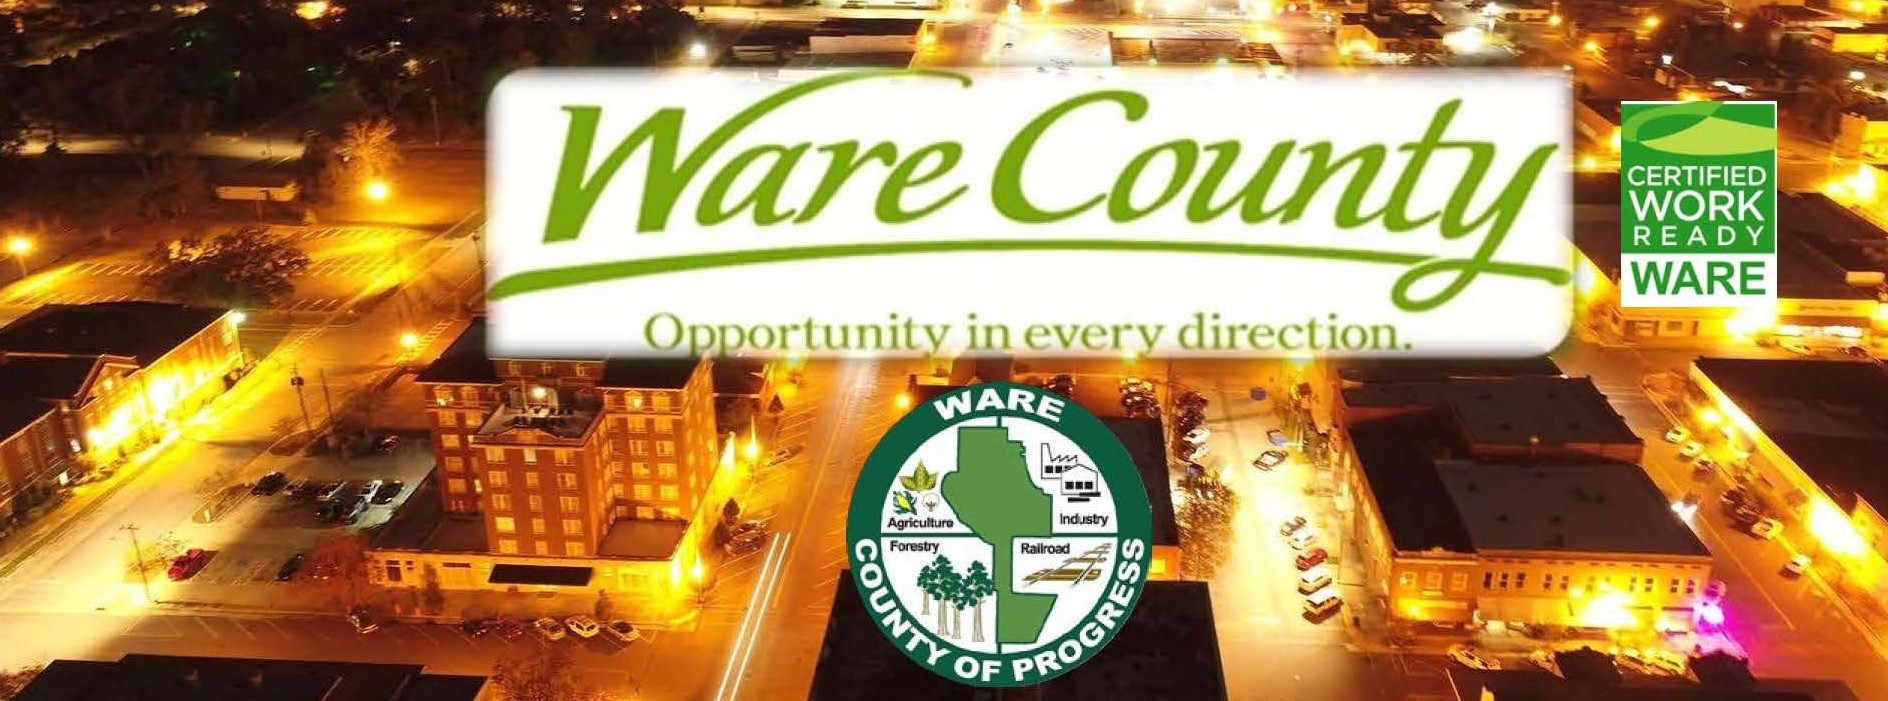 Ware County Government